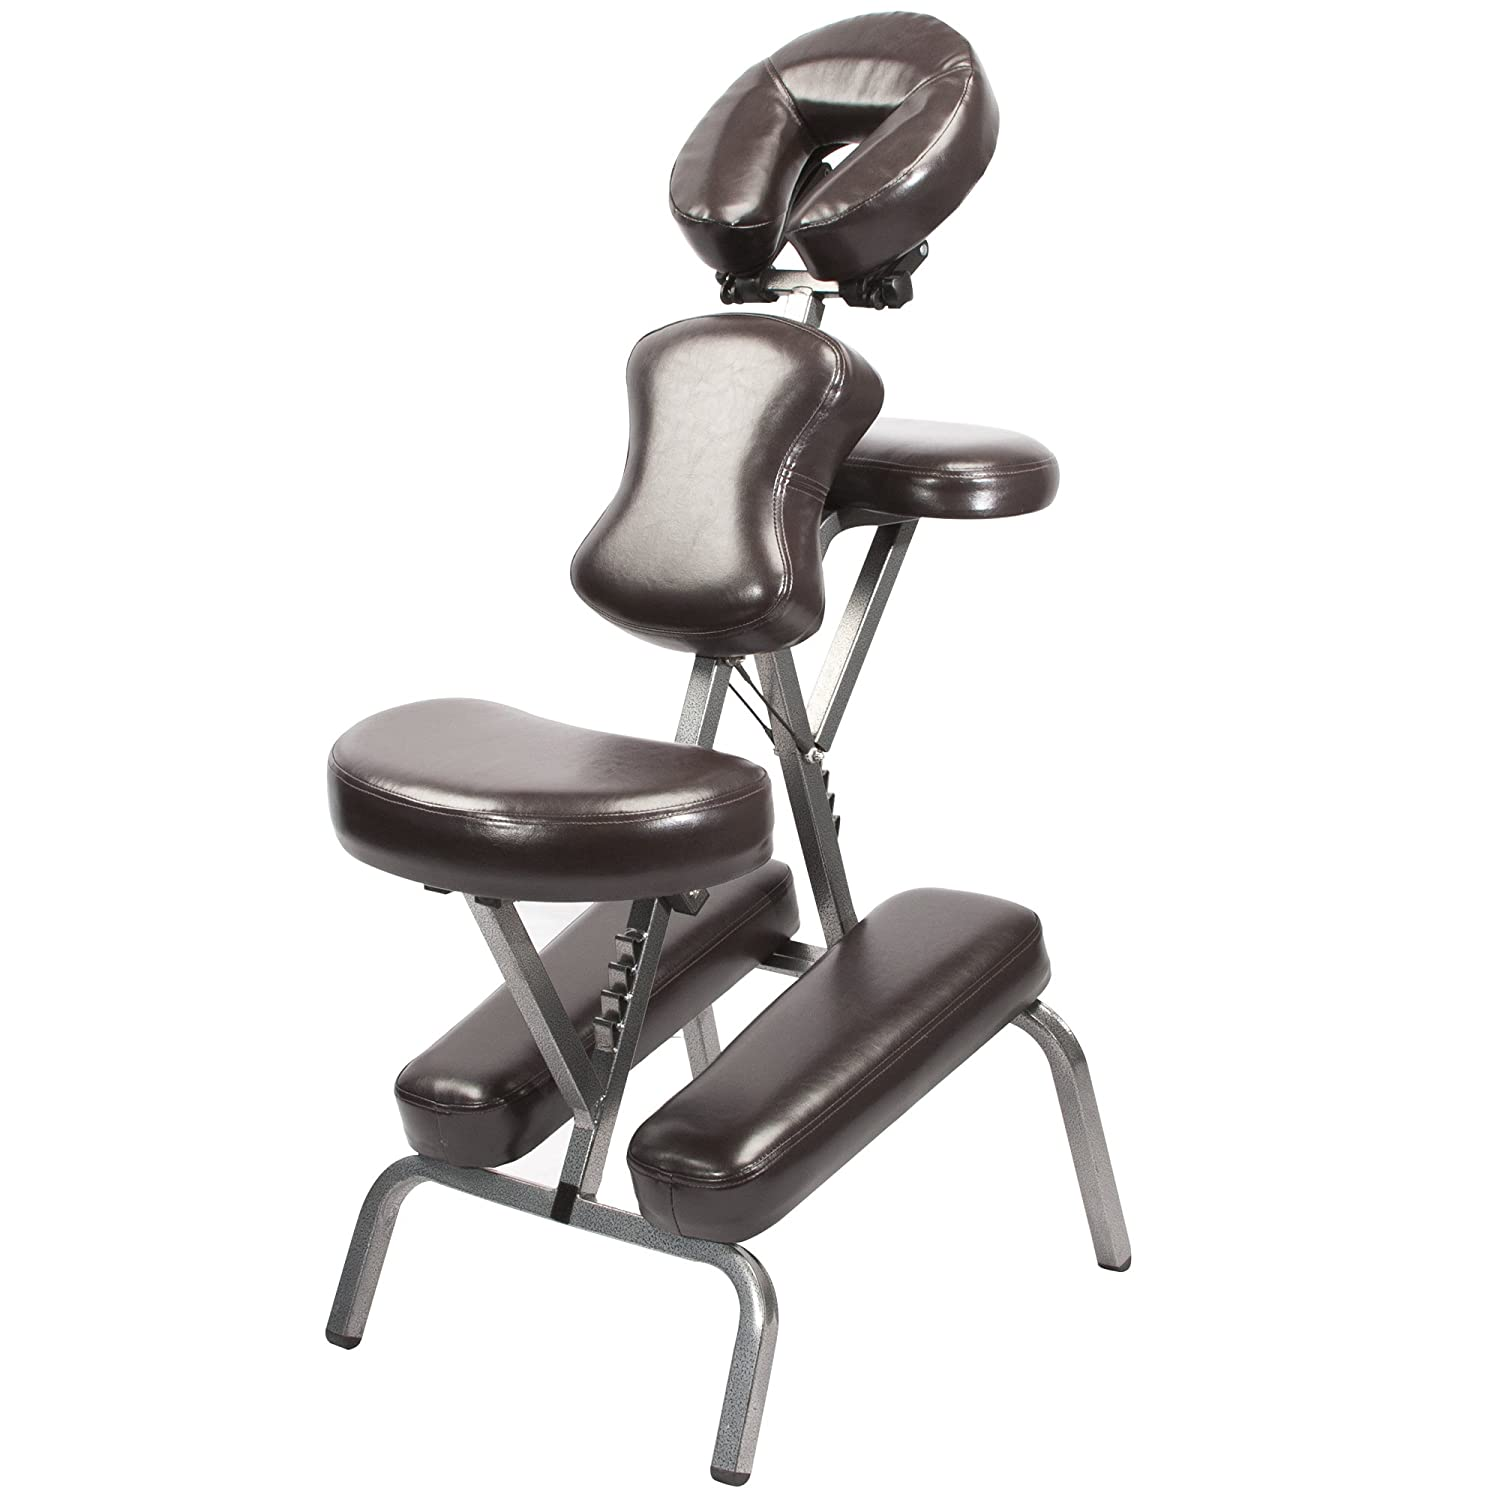 osaki of massage zero review chair technology jp design attachment premium amazon gravity amazing